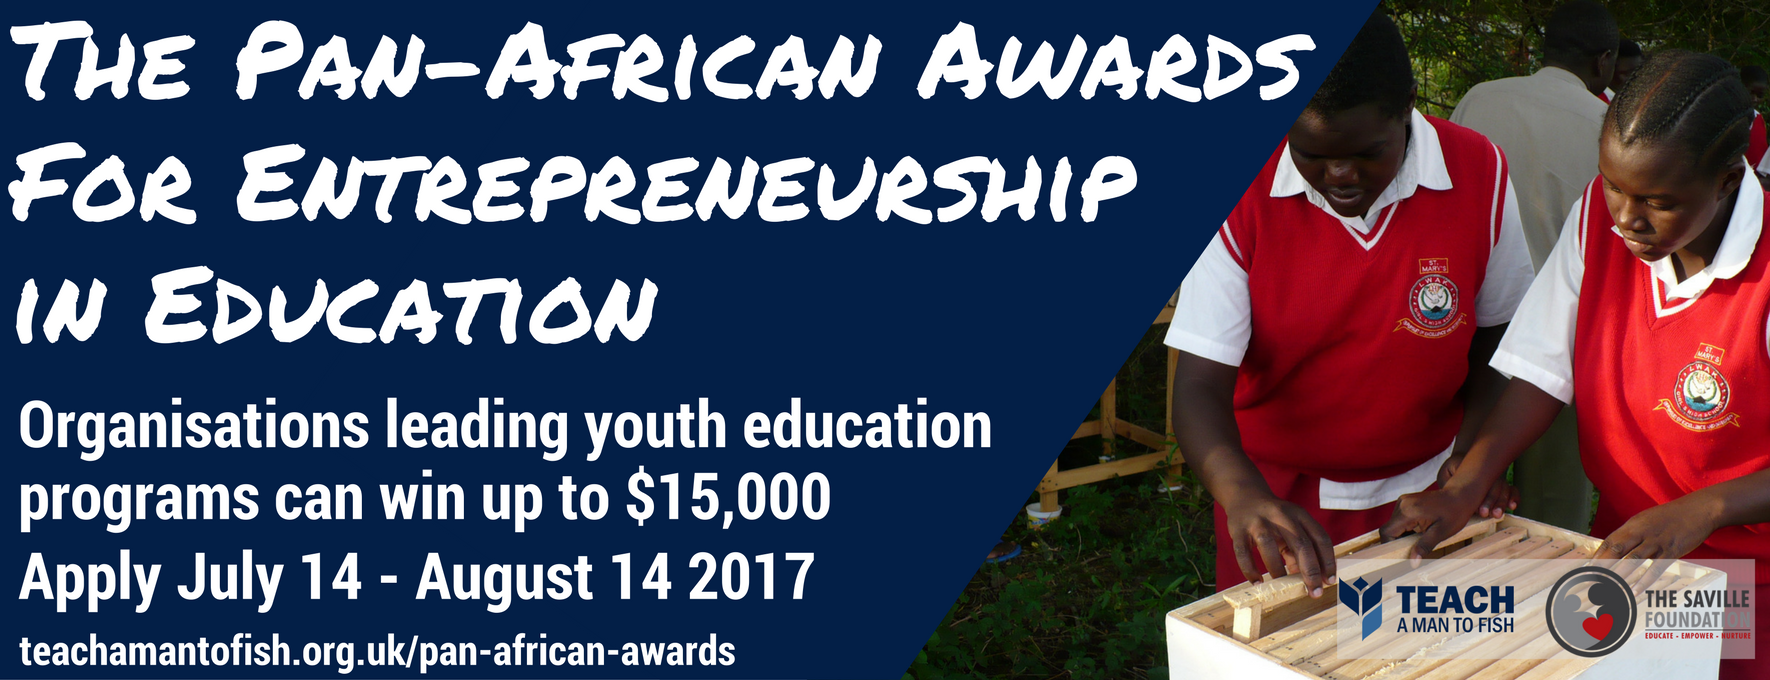 Pan-African Awards for Entrepreneurship in Education 2017